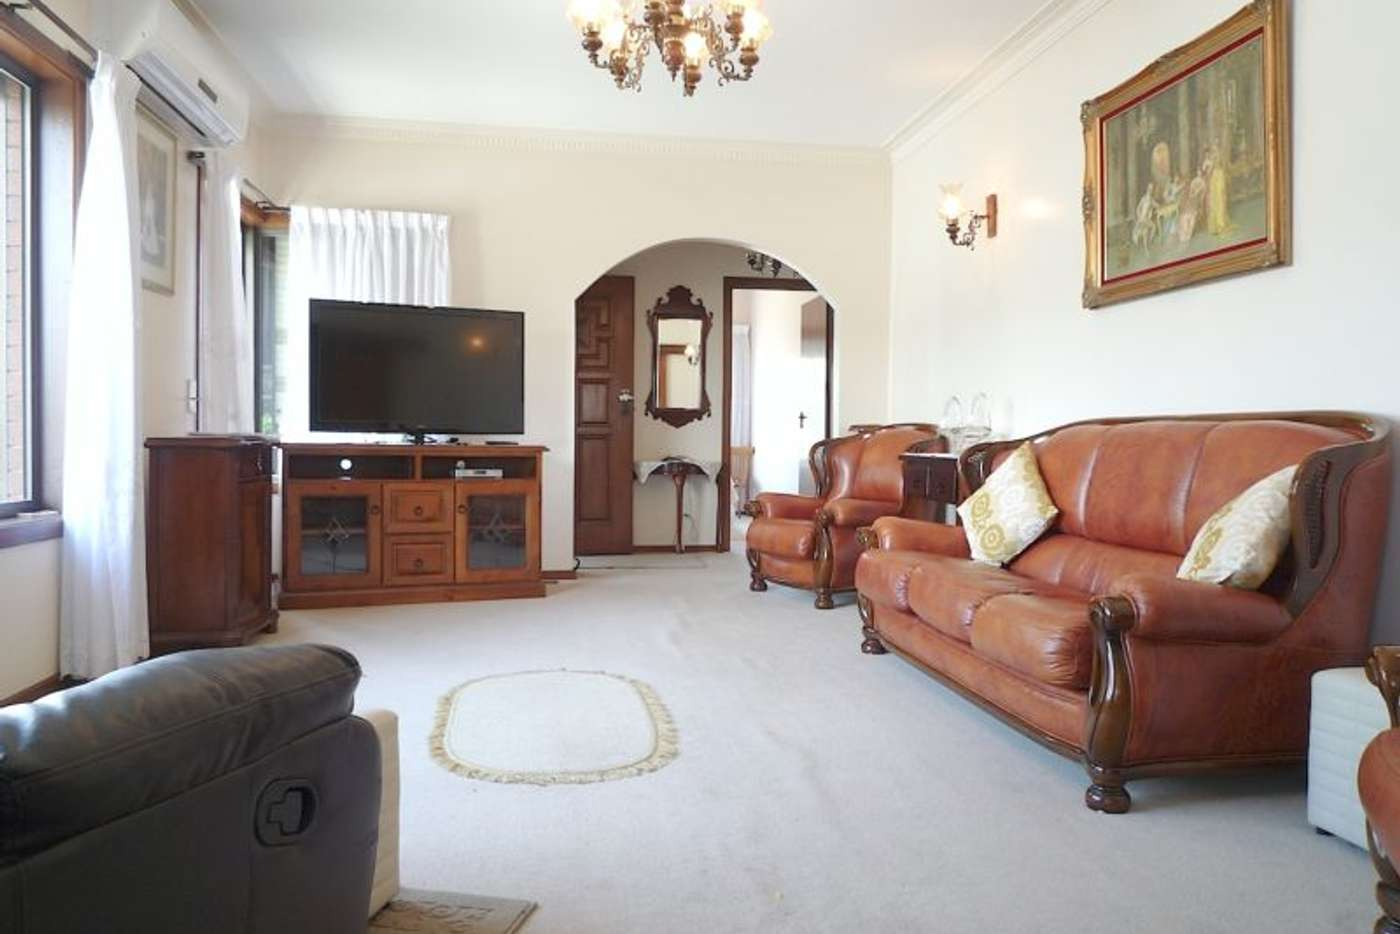 Main view of Homely house listing, 6 Woolacott Street, Coburg VIC 3058